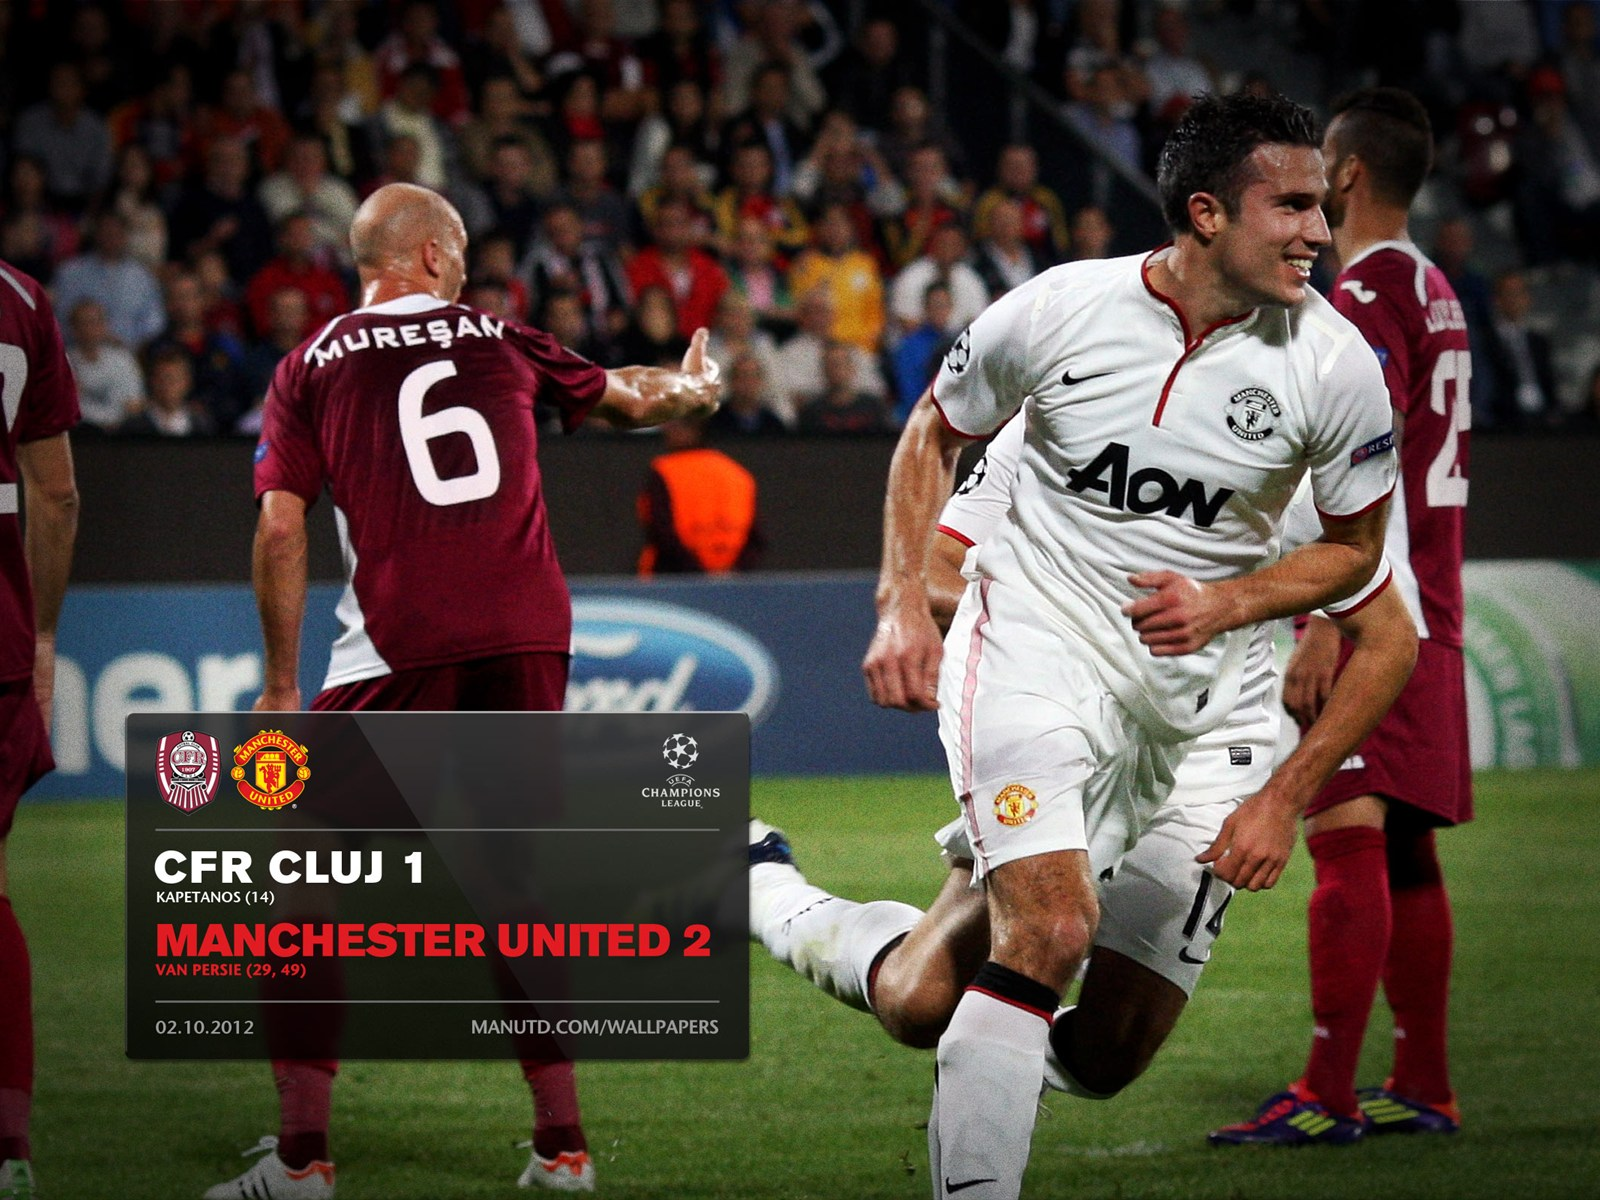 http://2.bp.blogspot.com/-VfNFNEoHTA4/UGw_XxEFZ3I/AAAAAAAAAc8/D4GyGzD5Uxo/s1600/cfr_cluj_vs_manchester_united_wallpapers_RVP_two_goal_scored.jpeg